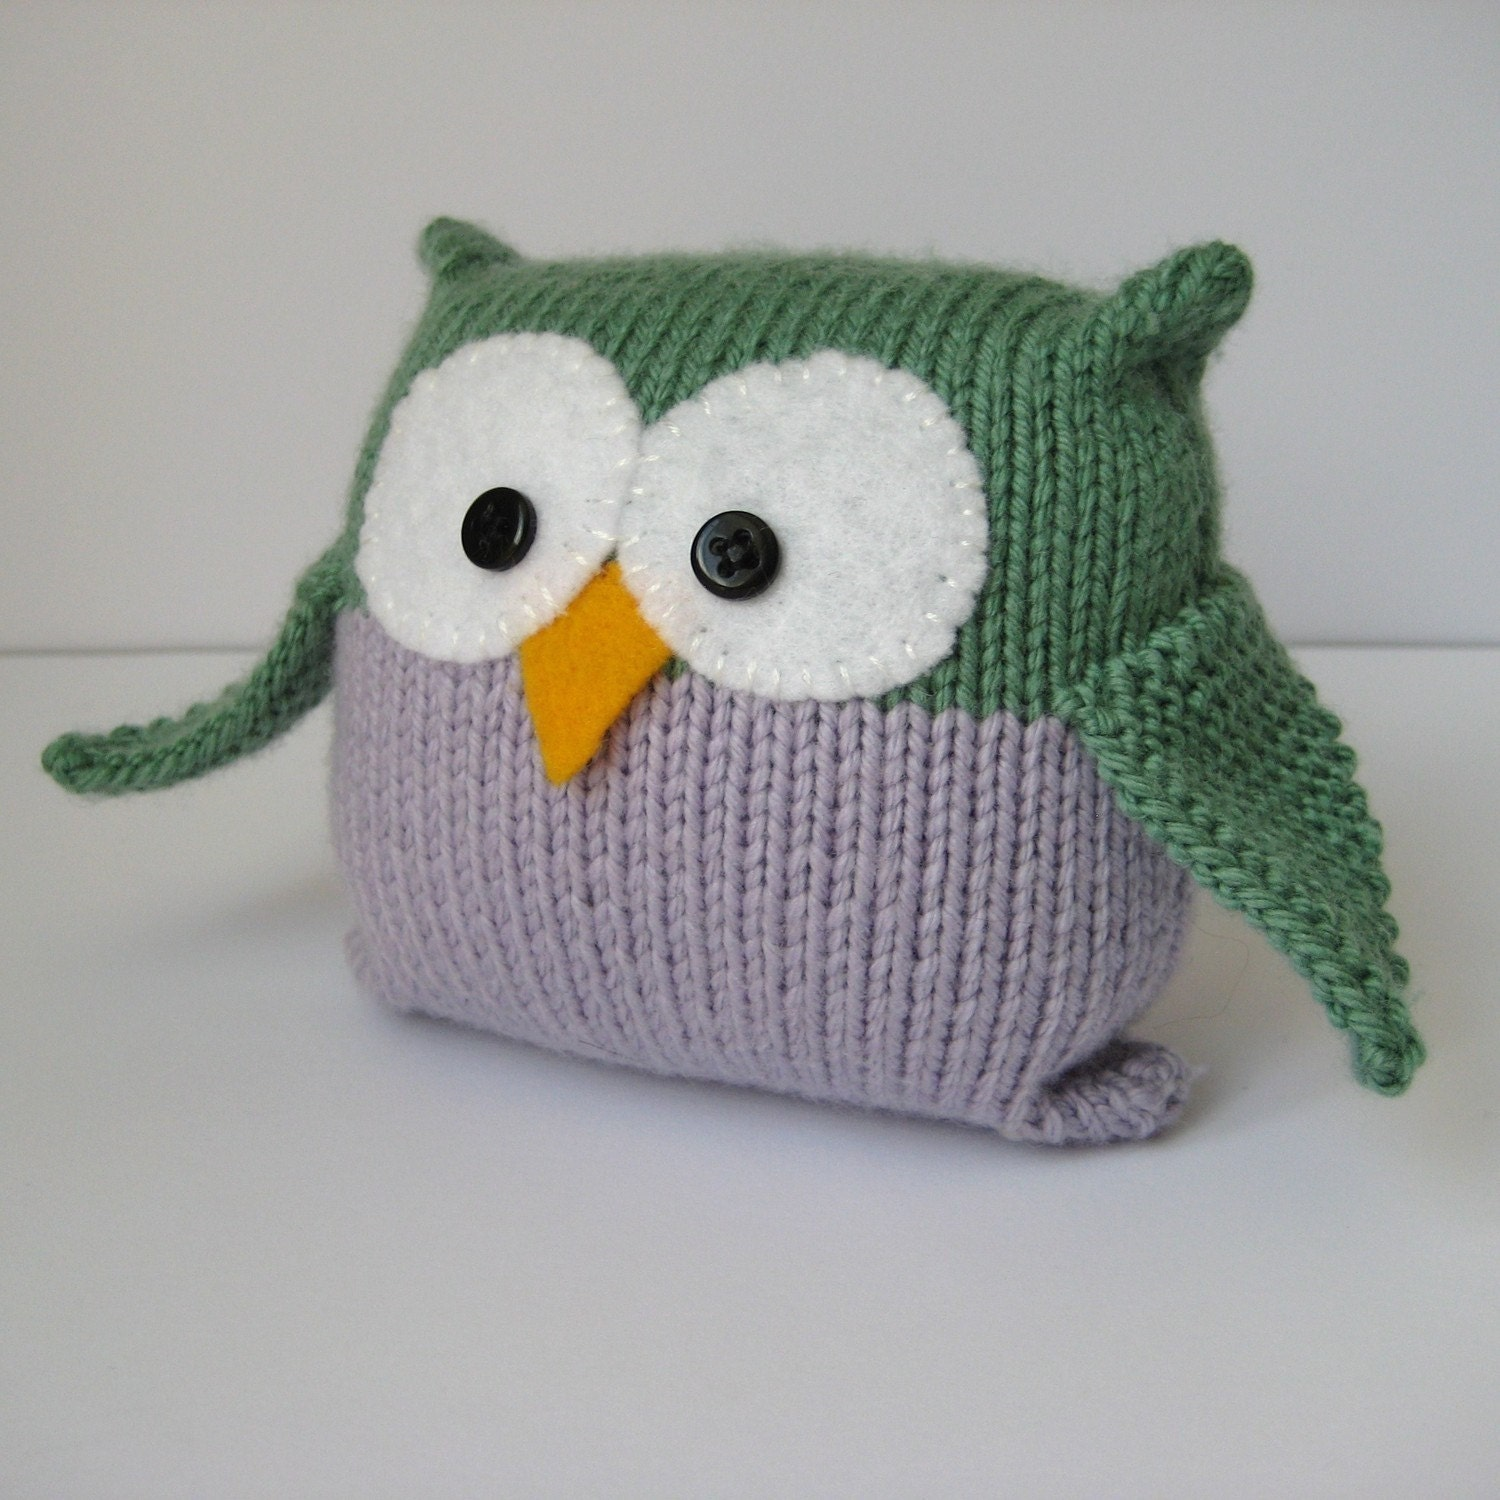 Easy Knitting Patterns Toys : Tooley Owl toy knitting pattern easy knit instant by fluffandfuzz